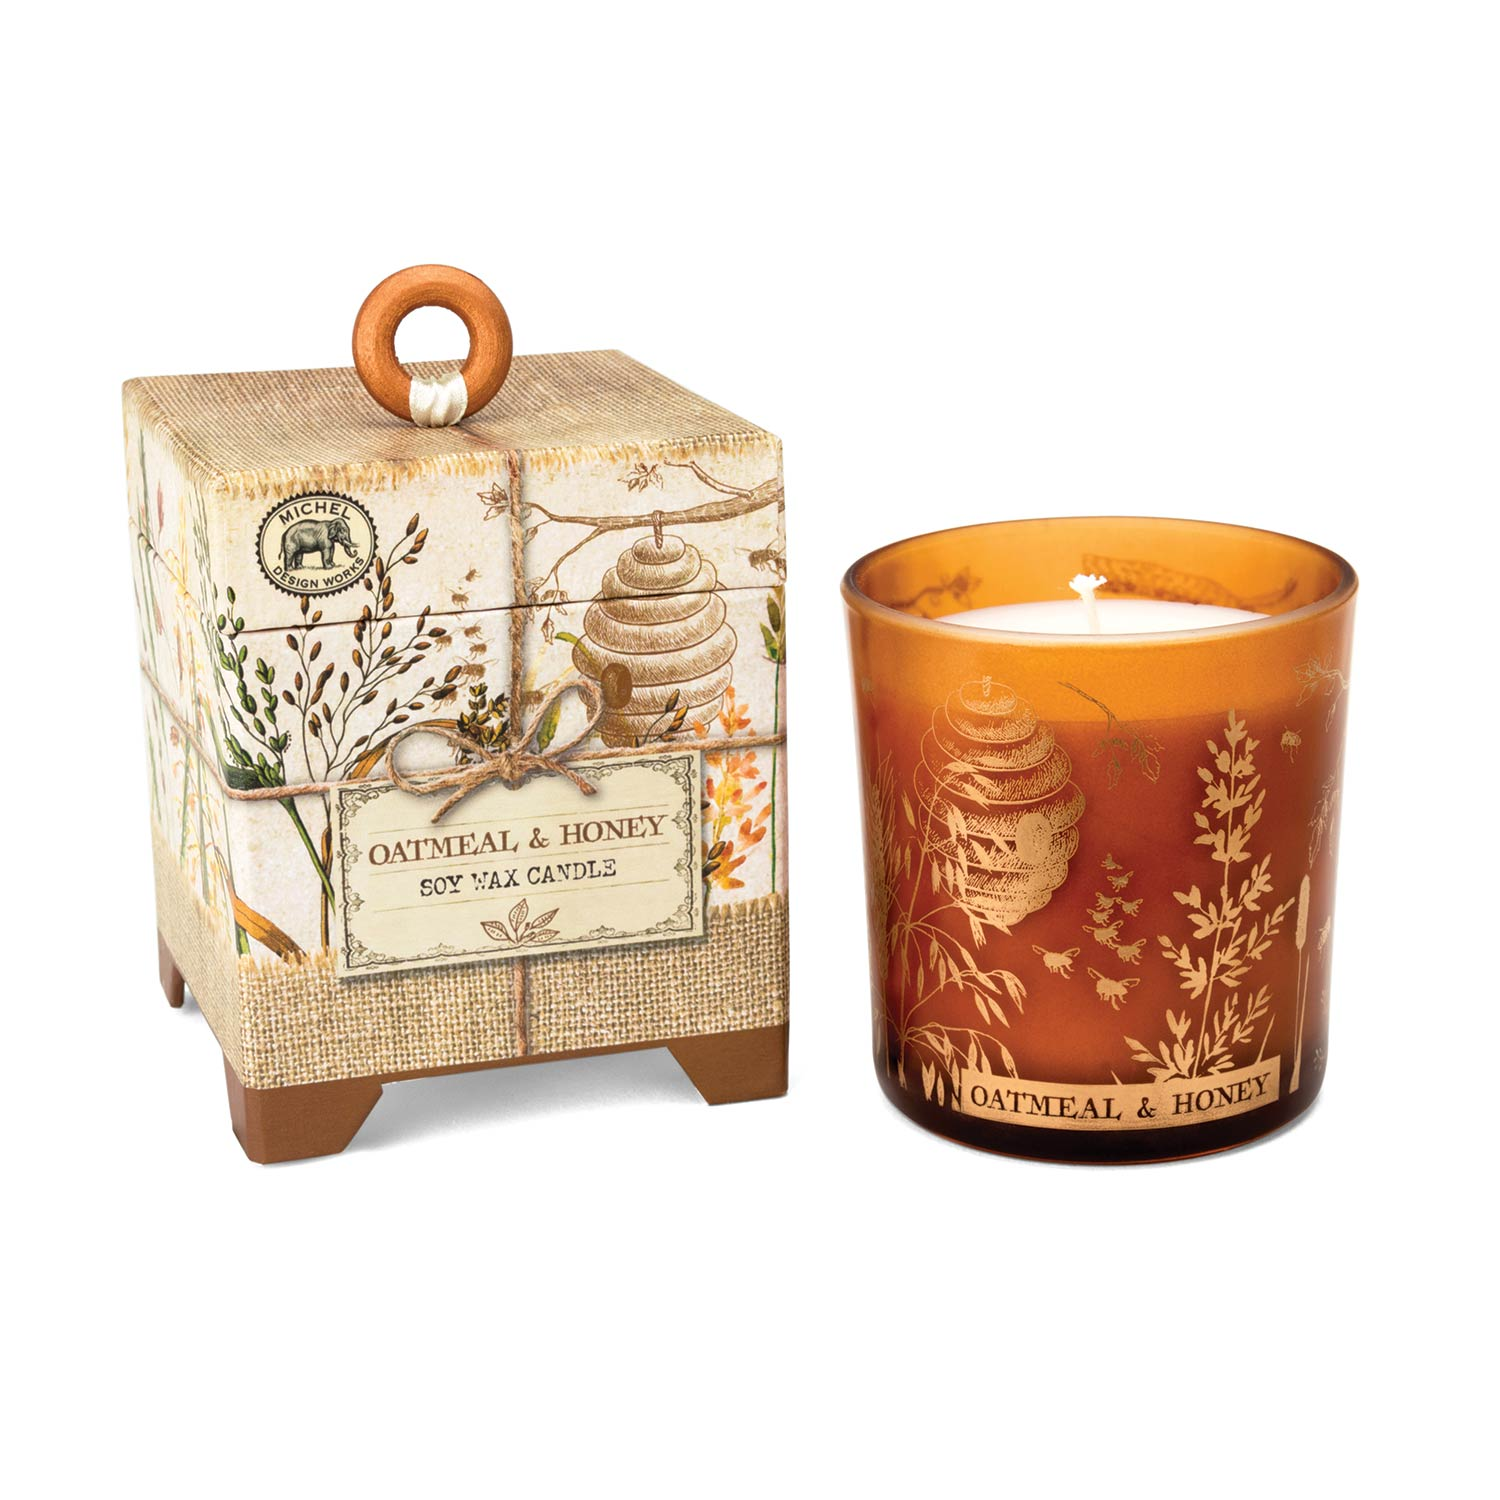 Oatmeal & Honey 6.5 oz. Soy Wax Candle